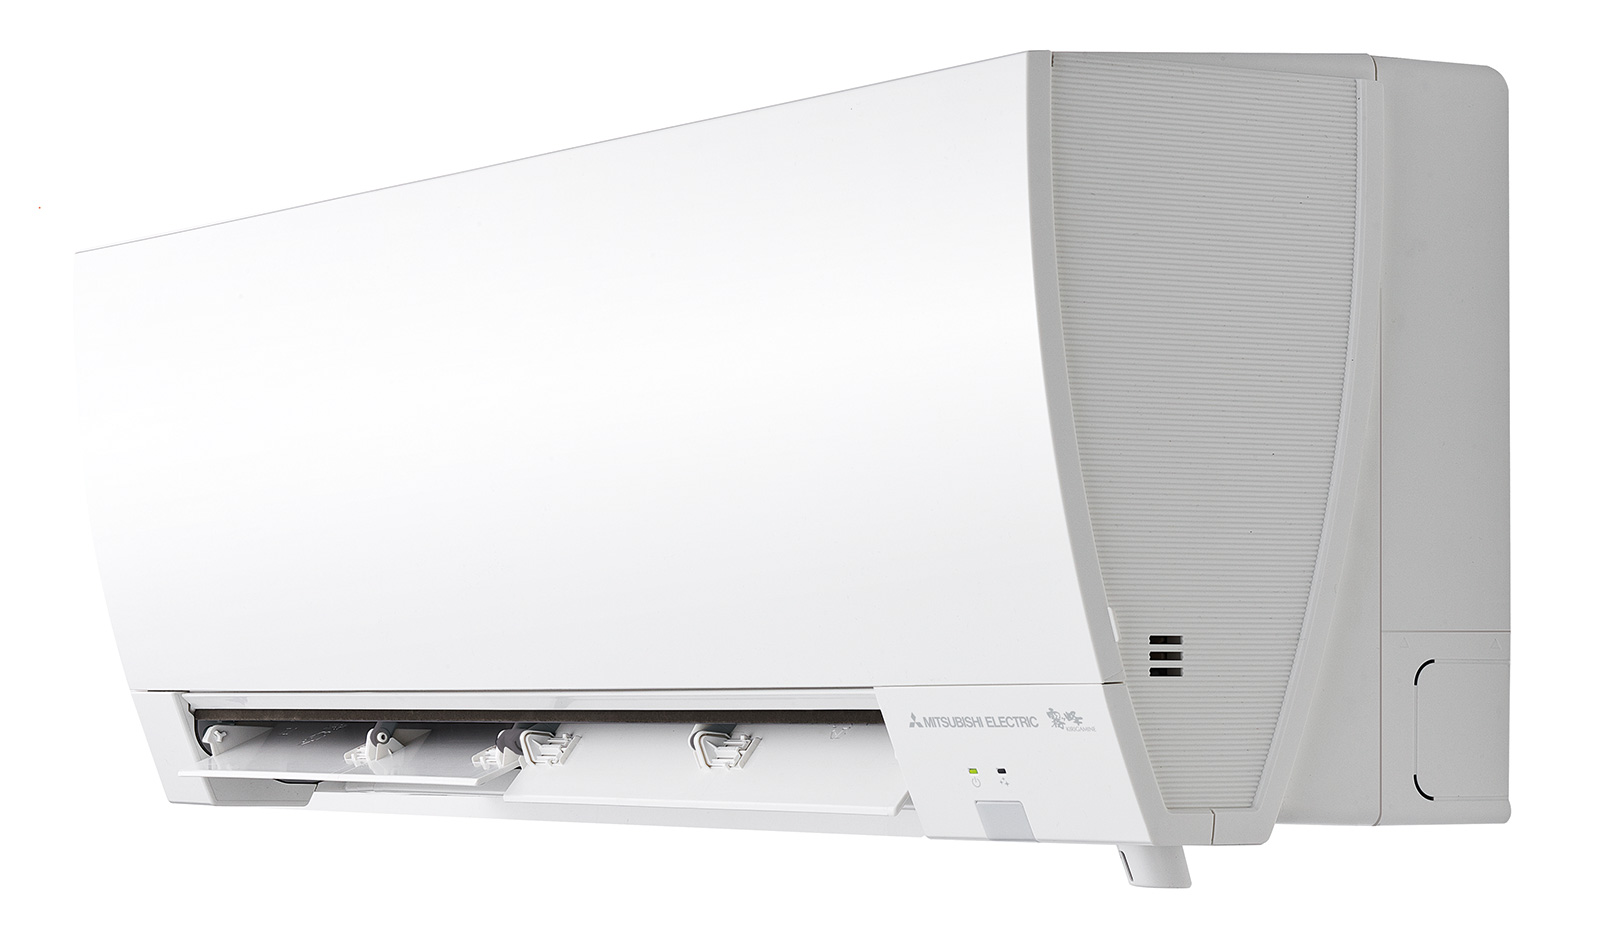 Mitsubishi Electric MSZ-FH50 VE / MUZ-FH50 VE